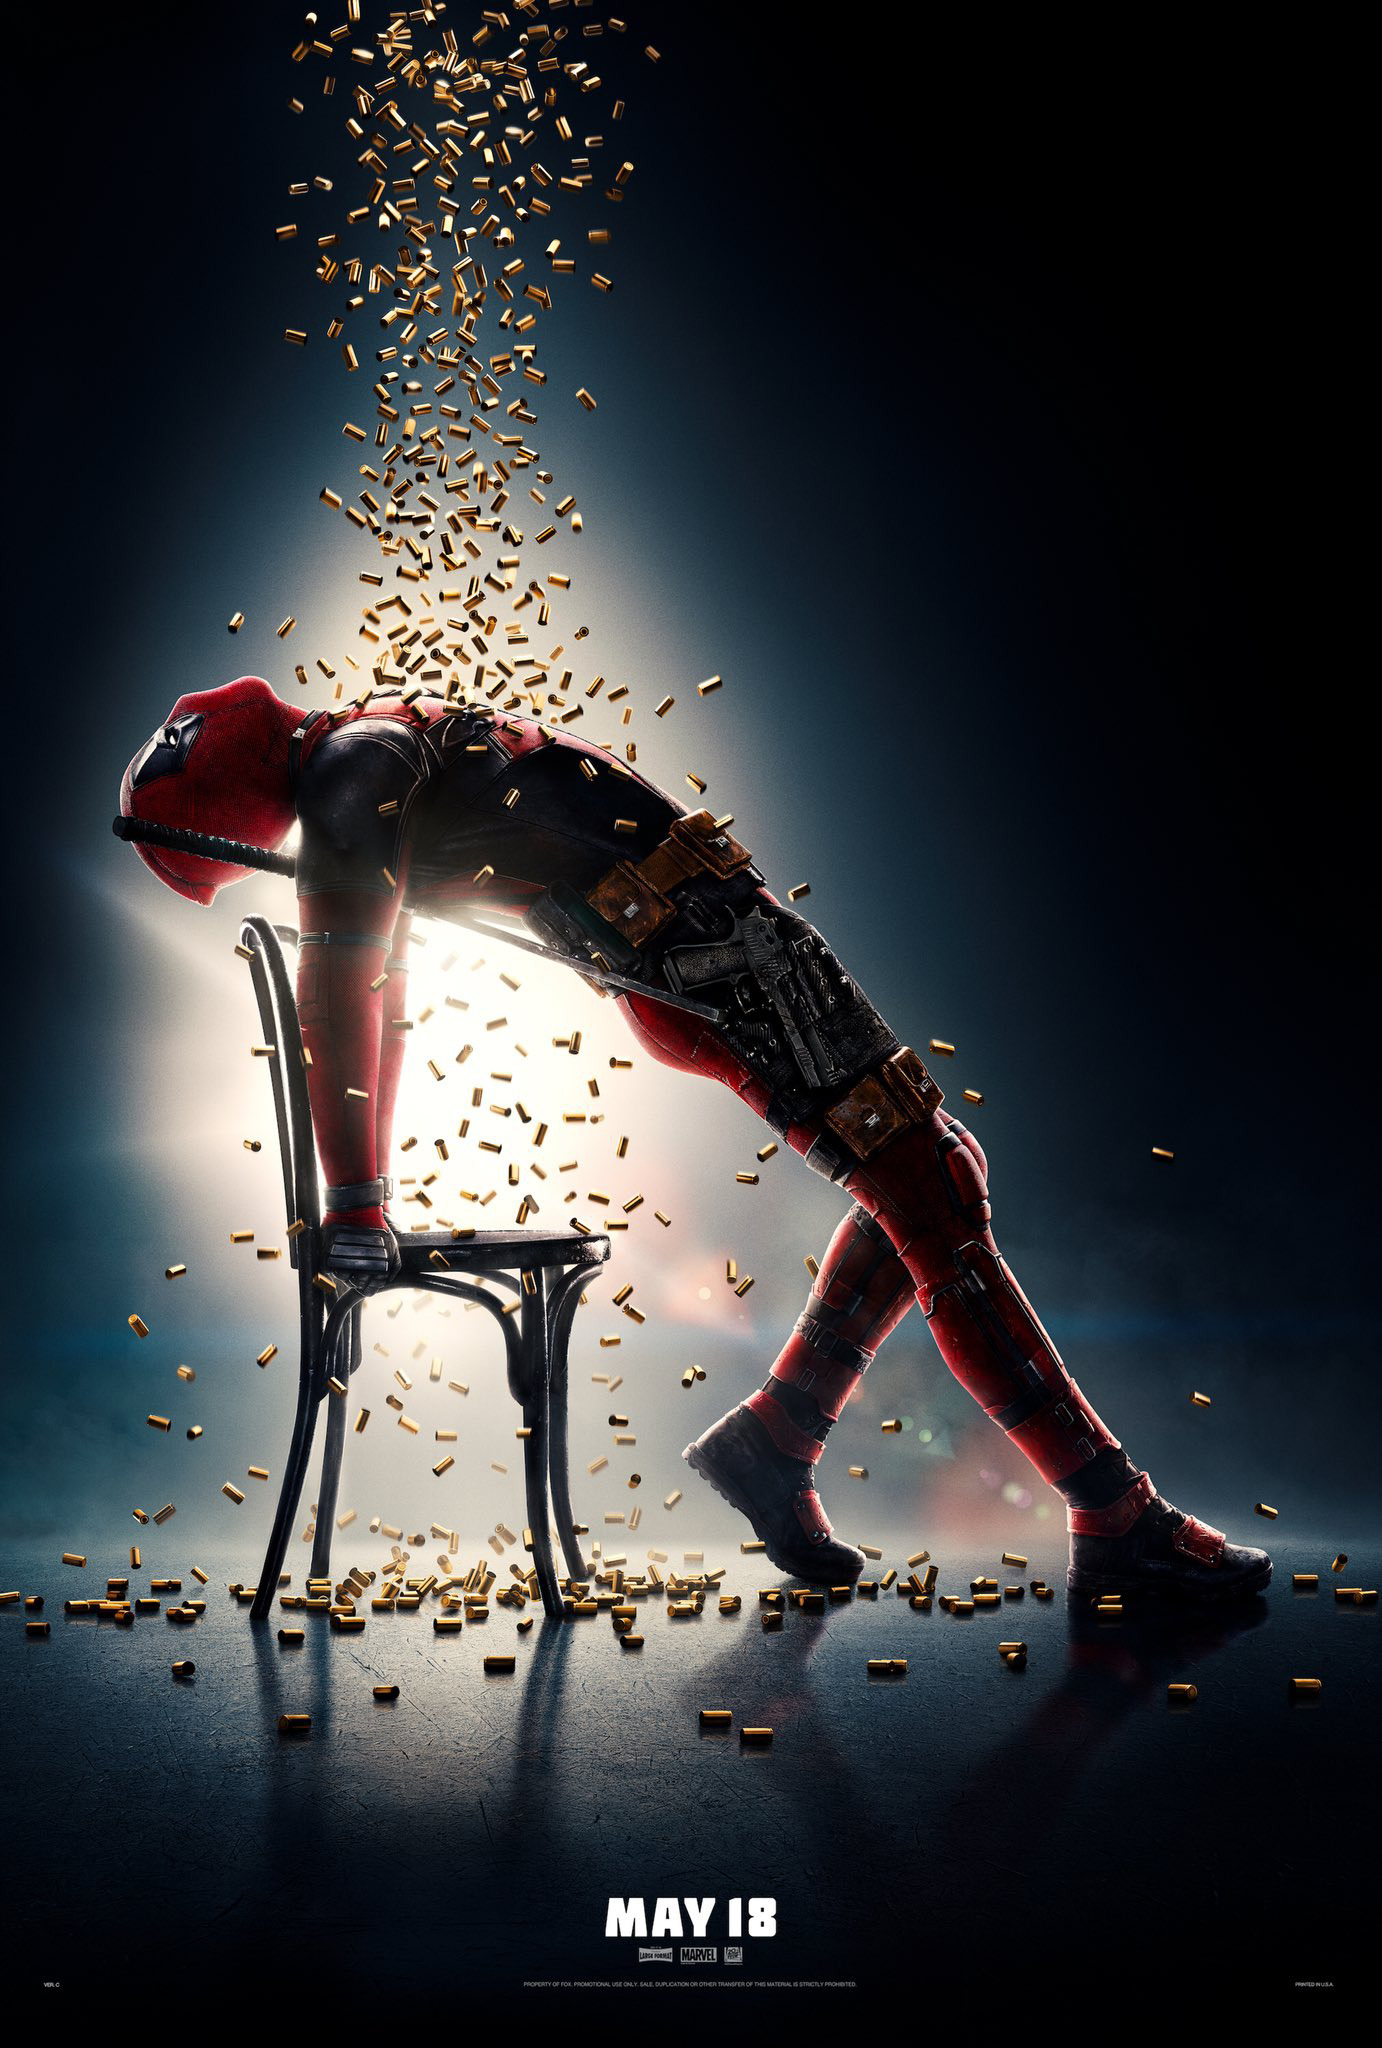 Deadpool 2 film review: does the sequel live up to its predecessor?